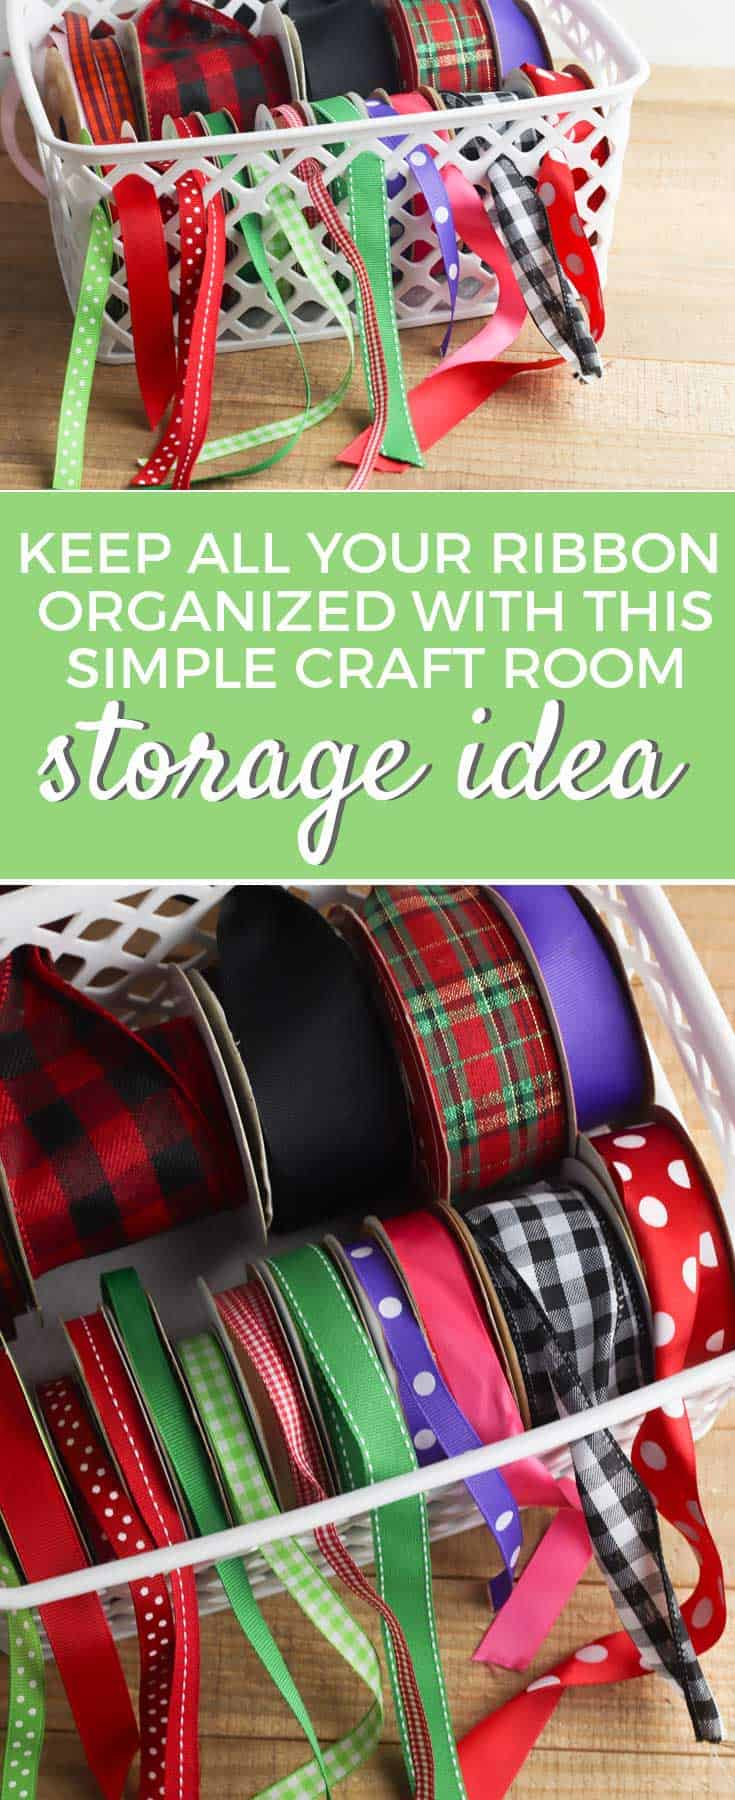 While it's easy to toss ribbon spools in a box, it's hard to use when your ribbon is hidden away. Here is a simple hack to organize your ribbon! #craftorganization #ribbonorganization #organizationhack via @simplifyingfamily